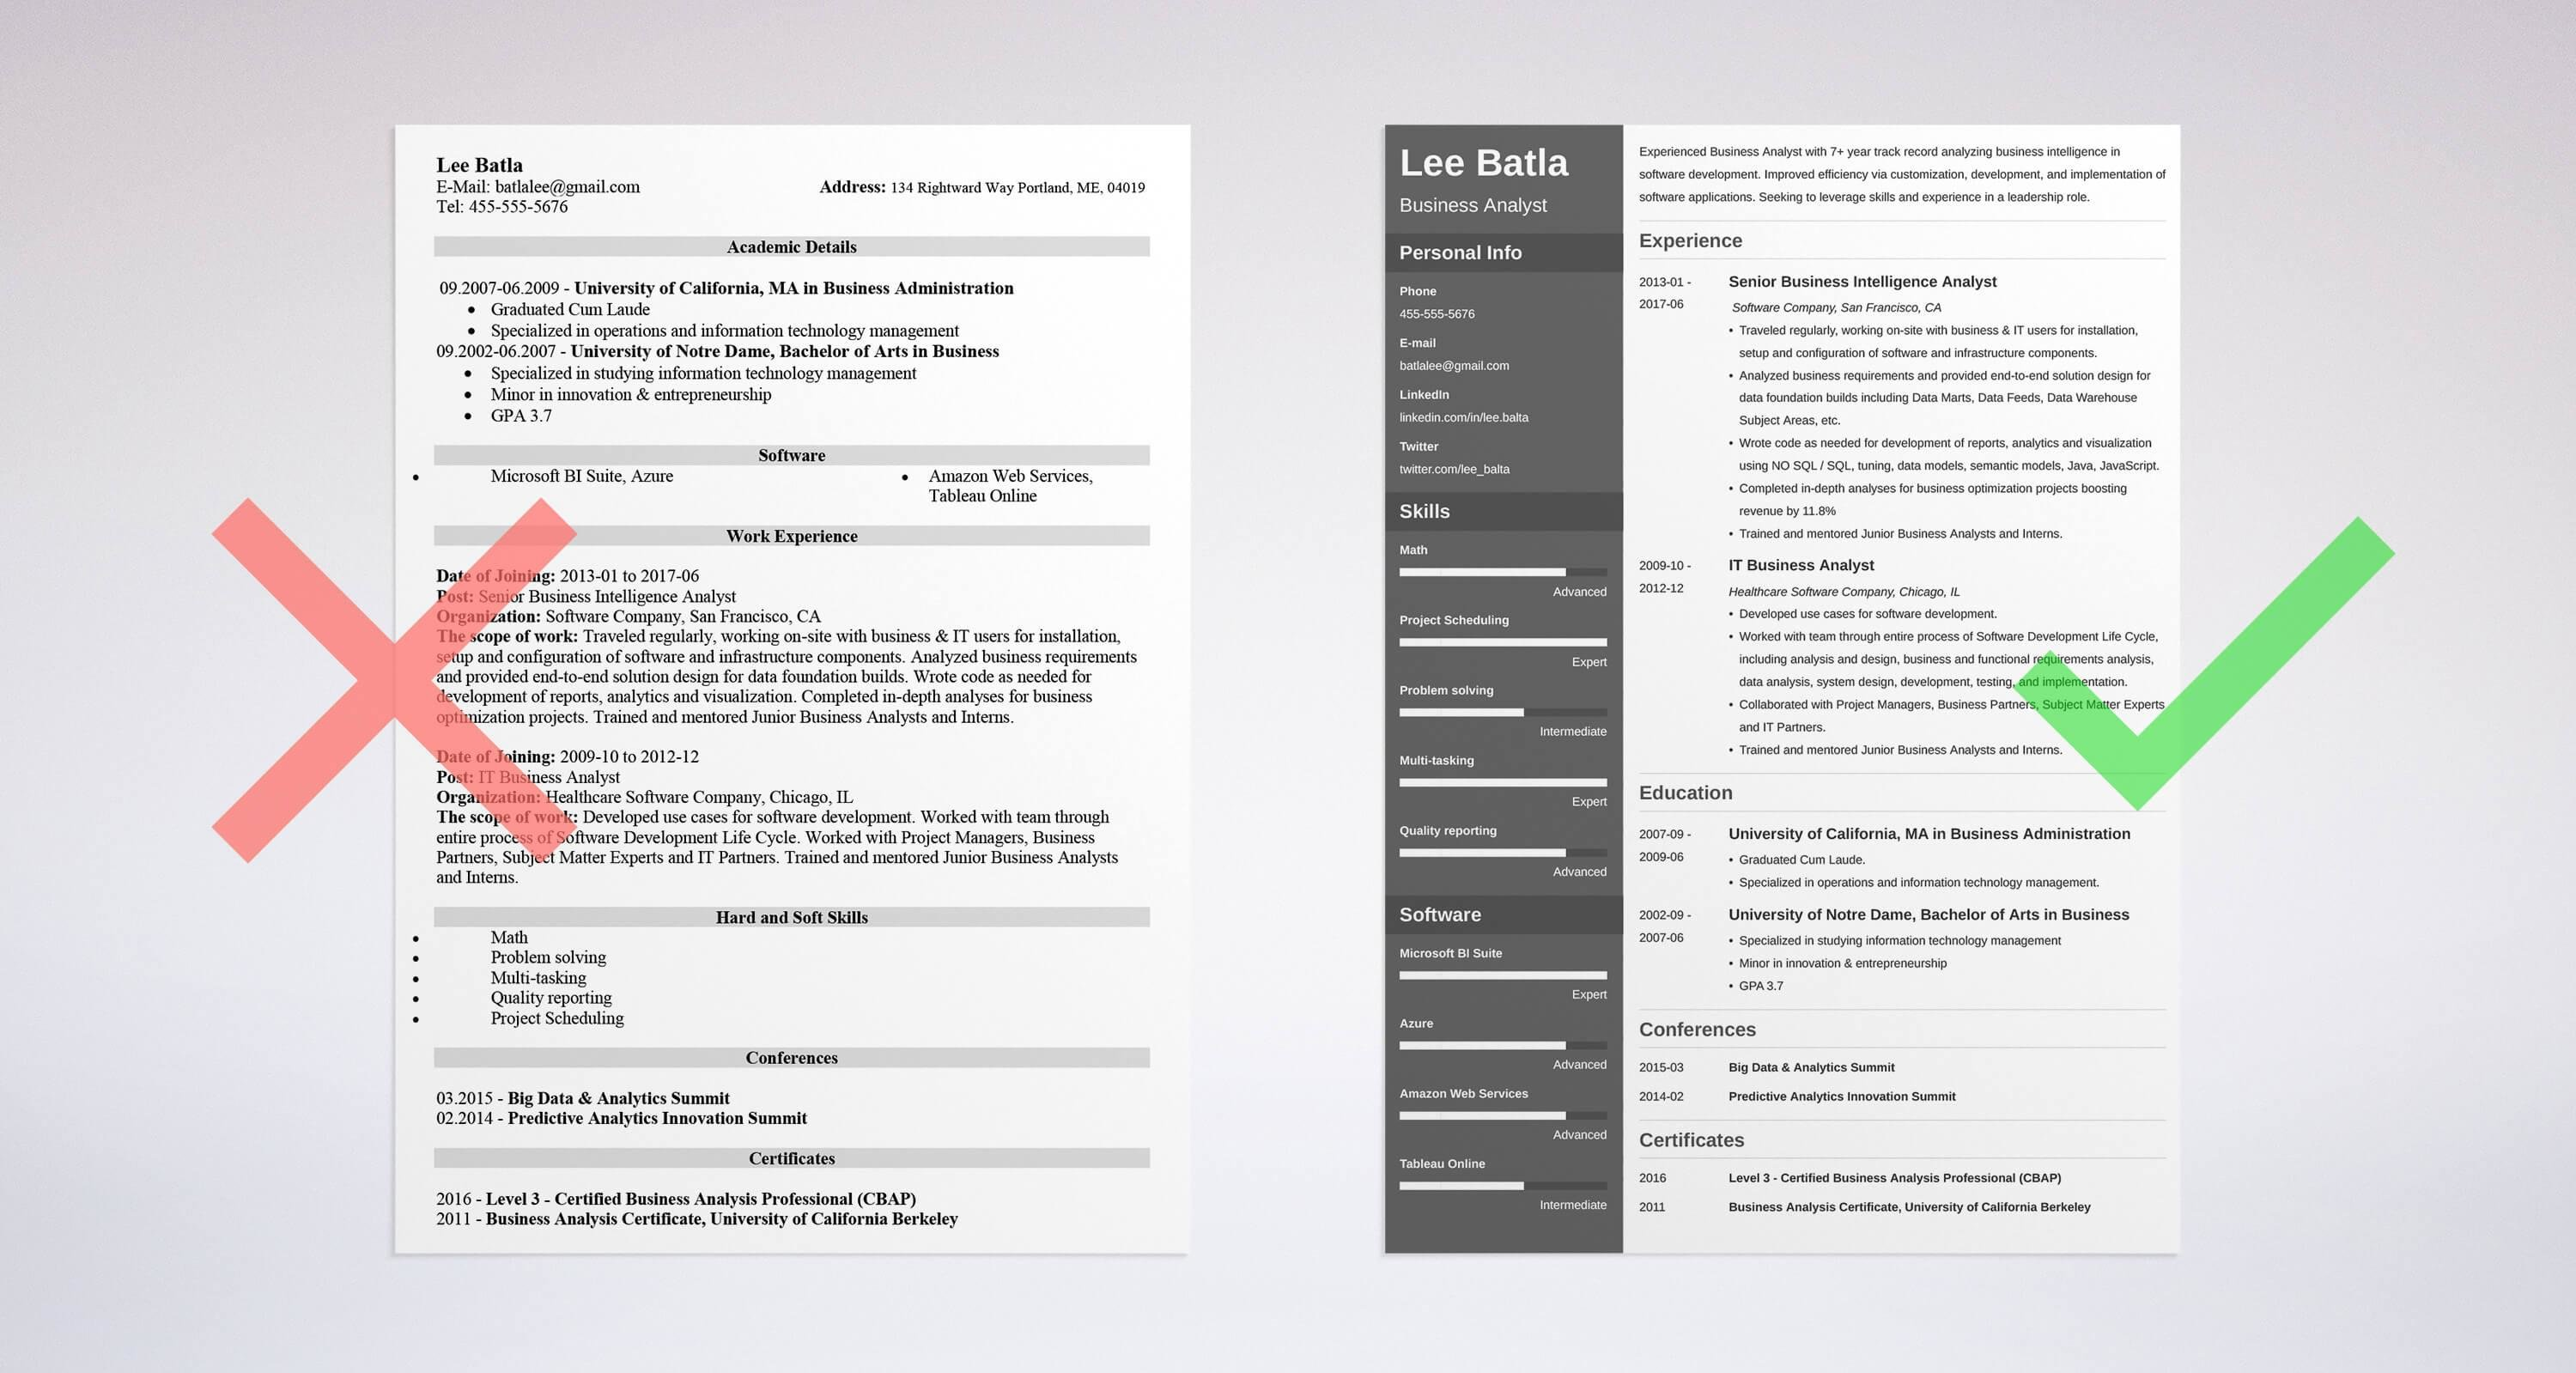 Amazing Business Analyst Resume: Sample U0026 Complete Guide [+20 Examples]